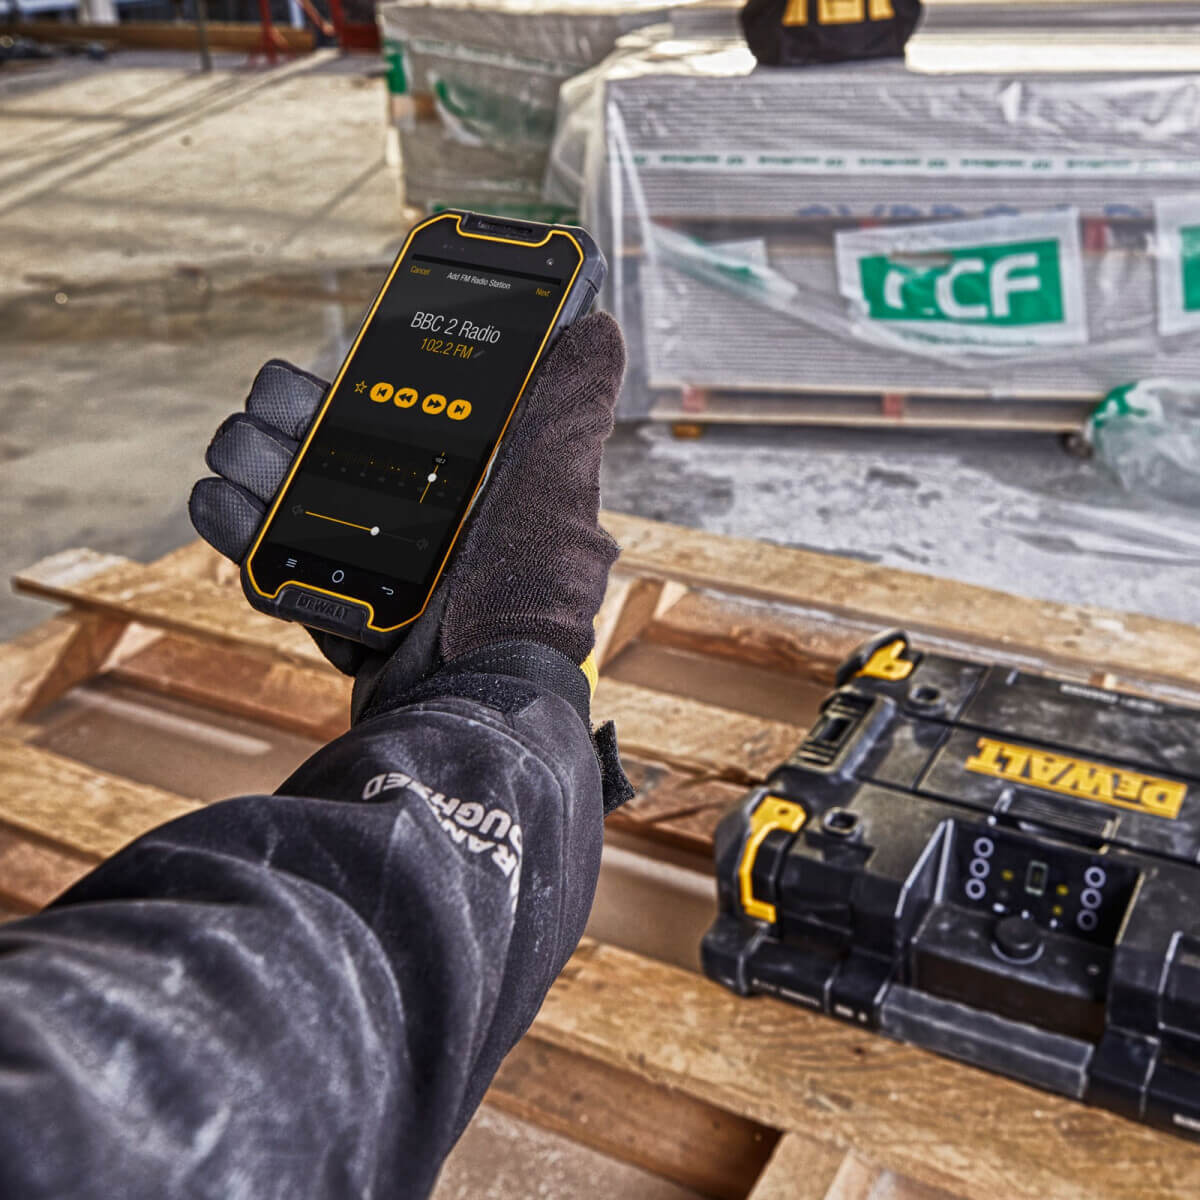 Dewalt Radio Connect device mobile app